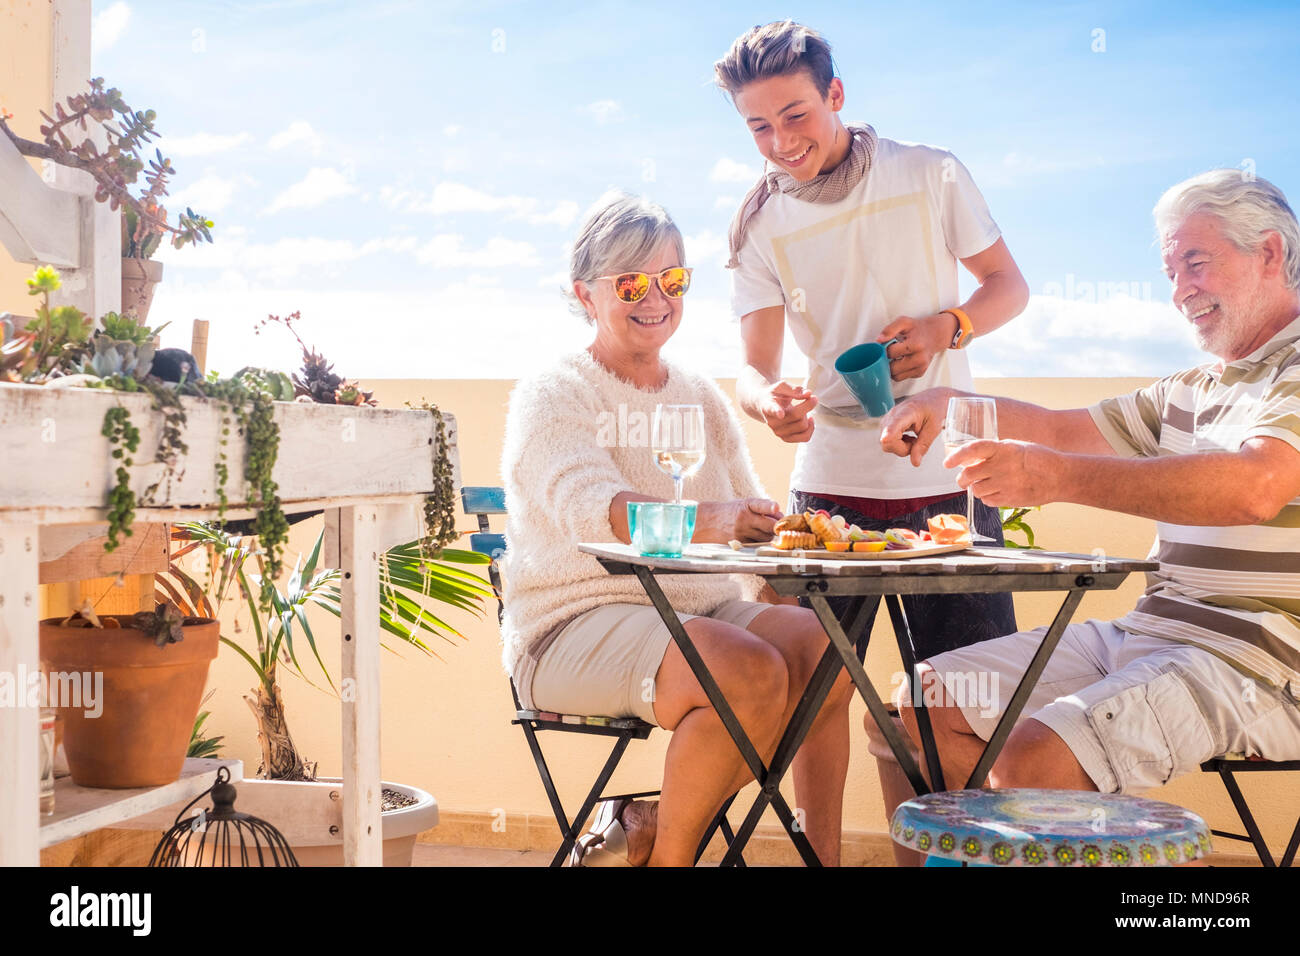 grandfather and grandmother and boy nephew having nice time leisure activity outdoor at the terrace rooftop. sunlight for summer concept or nice retir - Stock Image